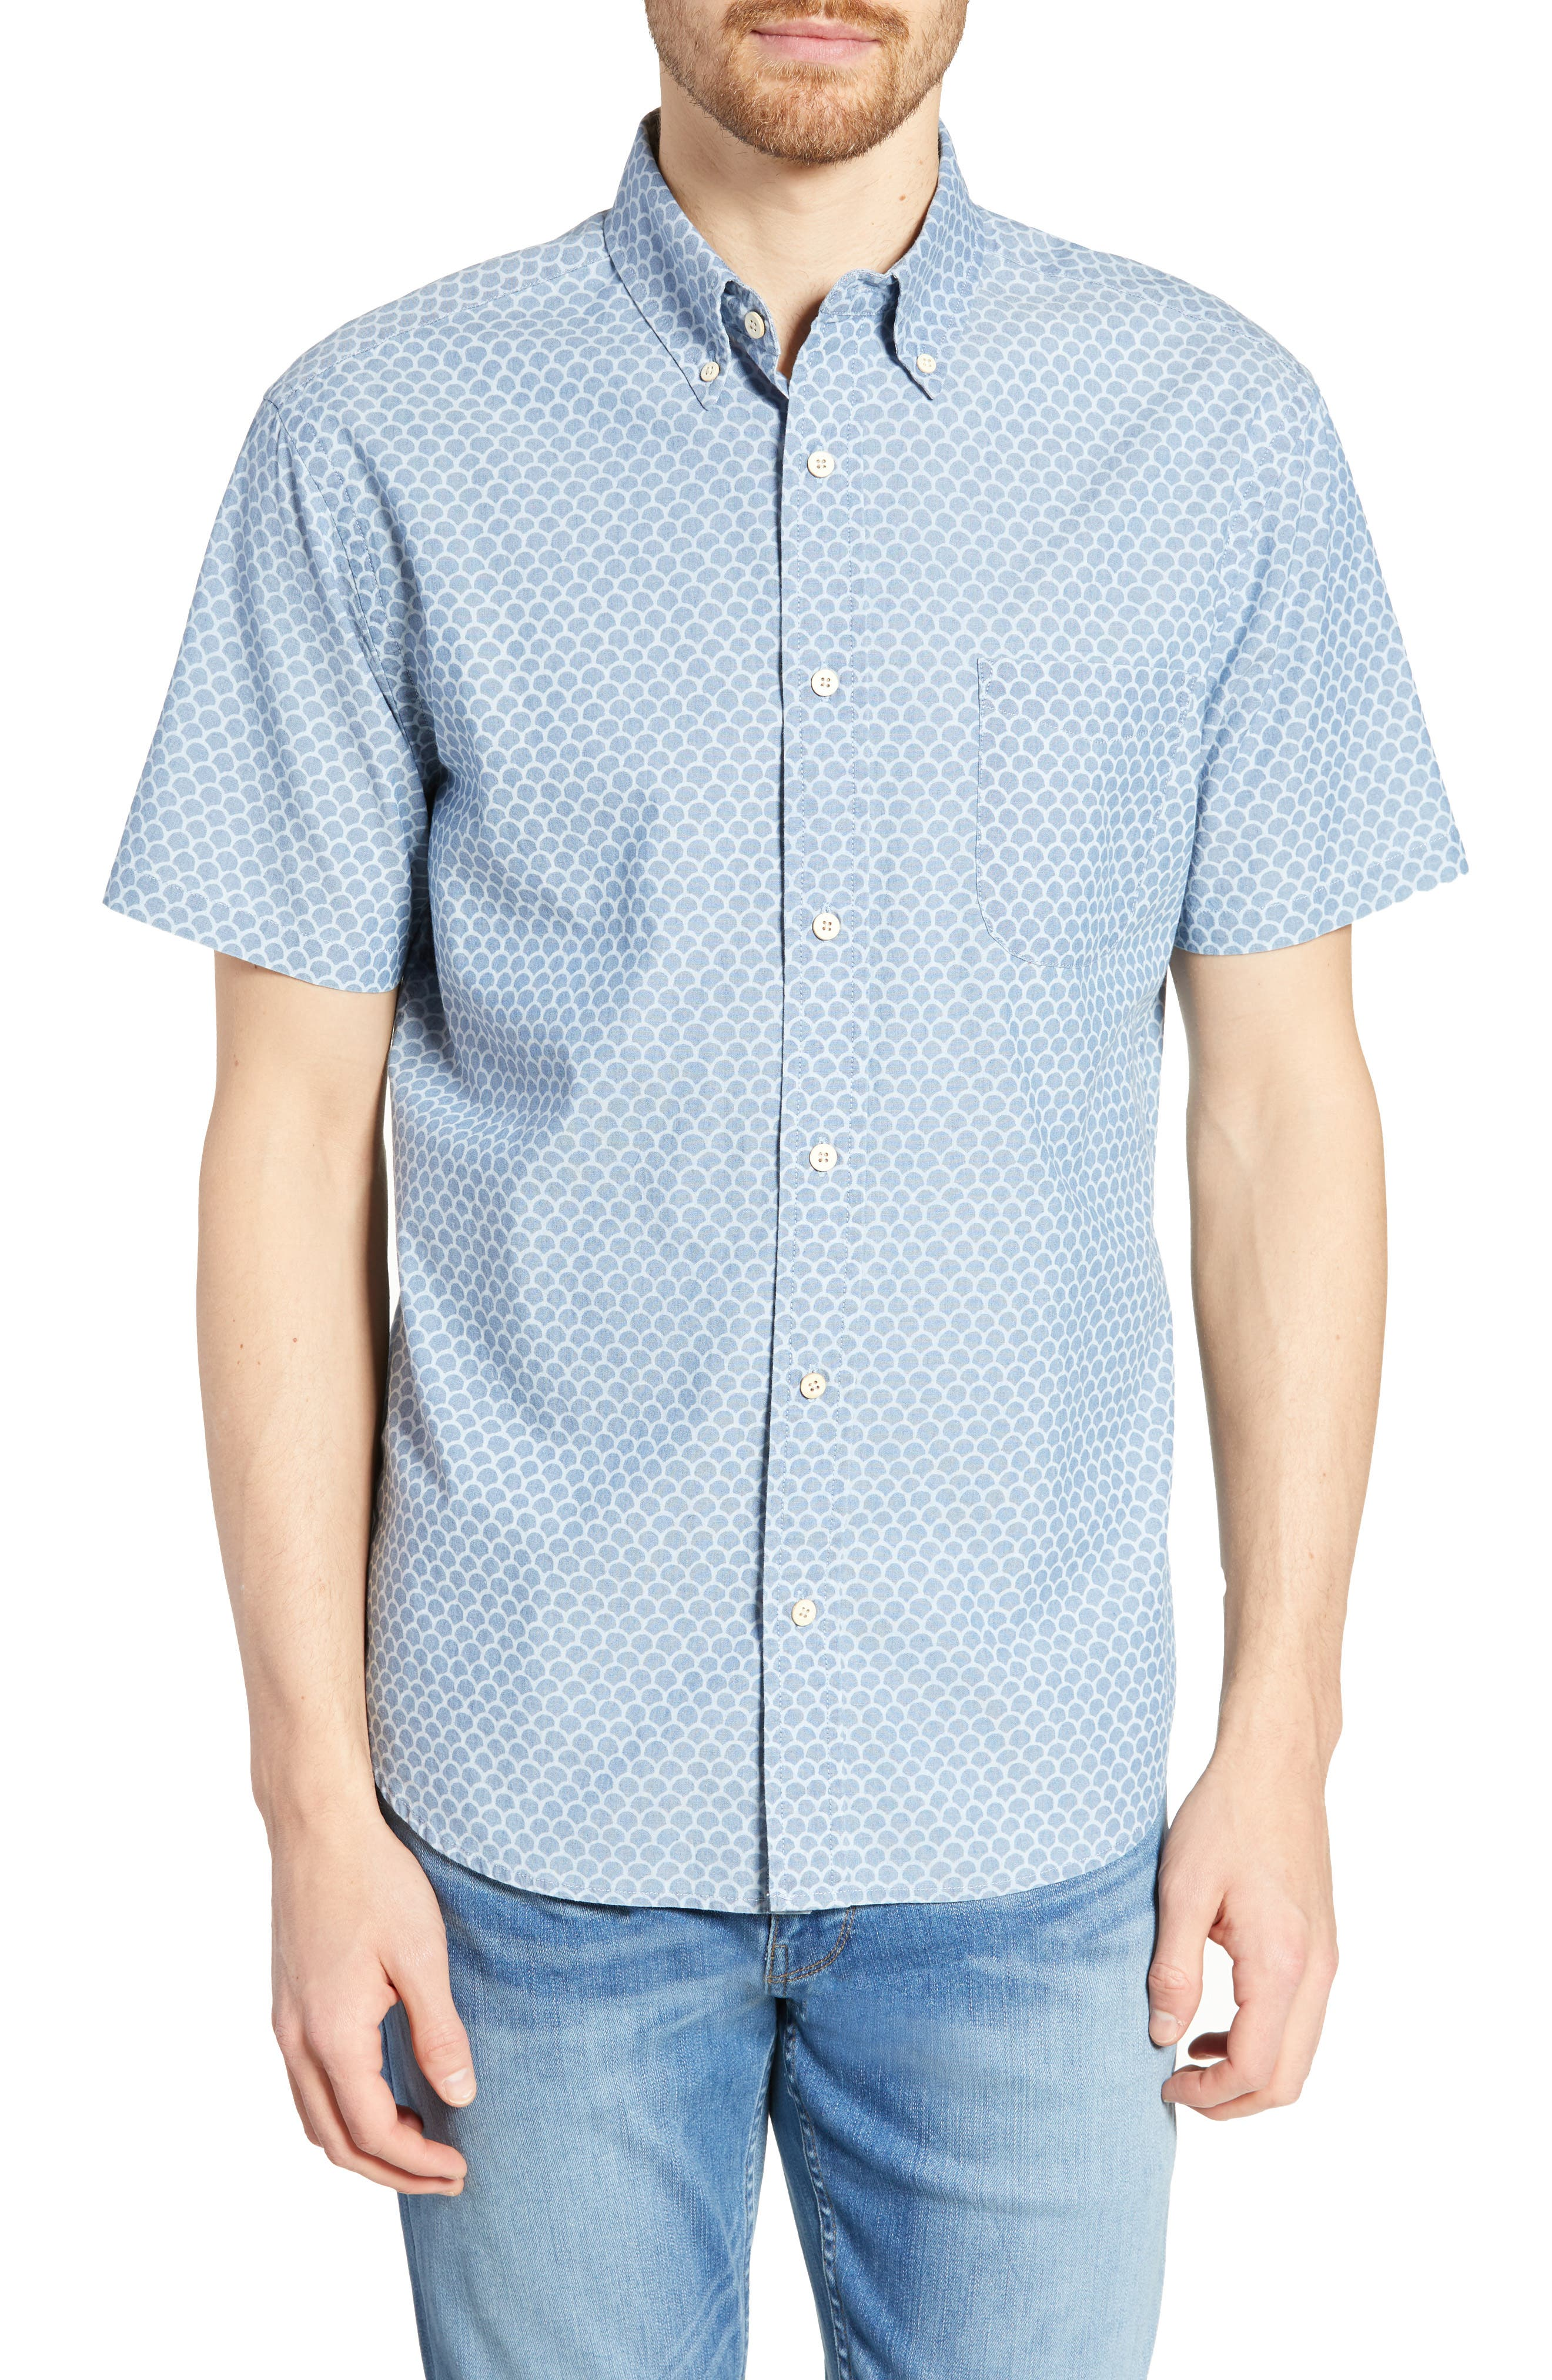 Faherty Pacific Regular Fit Fishscale Print Cotton Sport Shirt, Blue